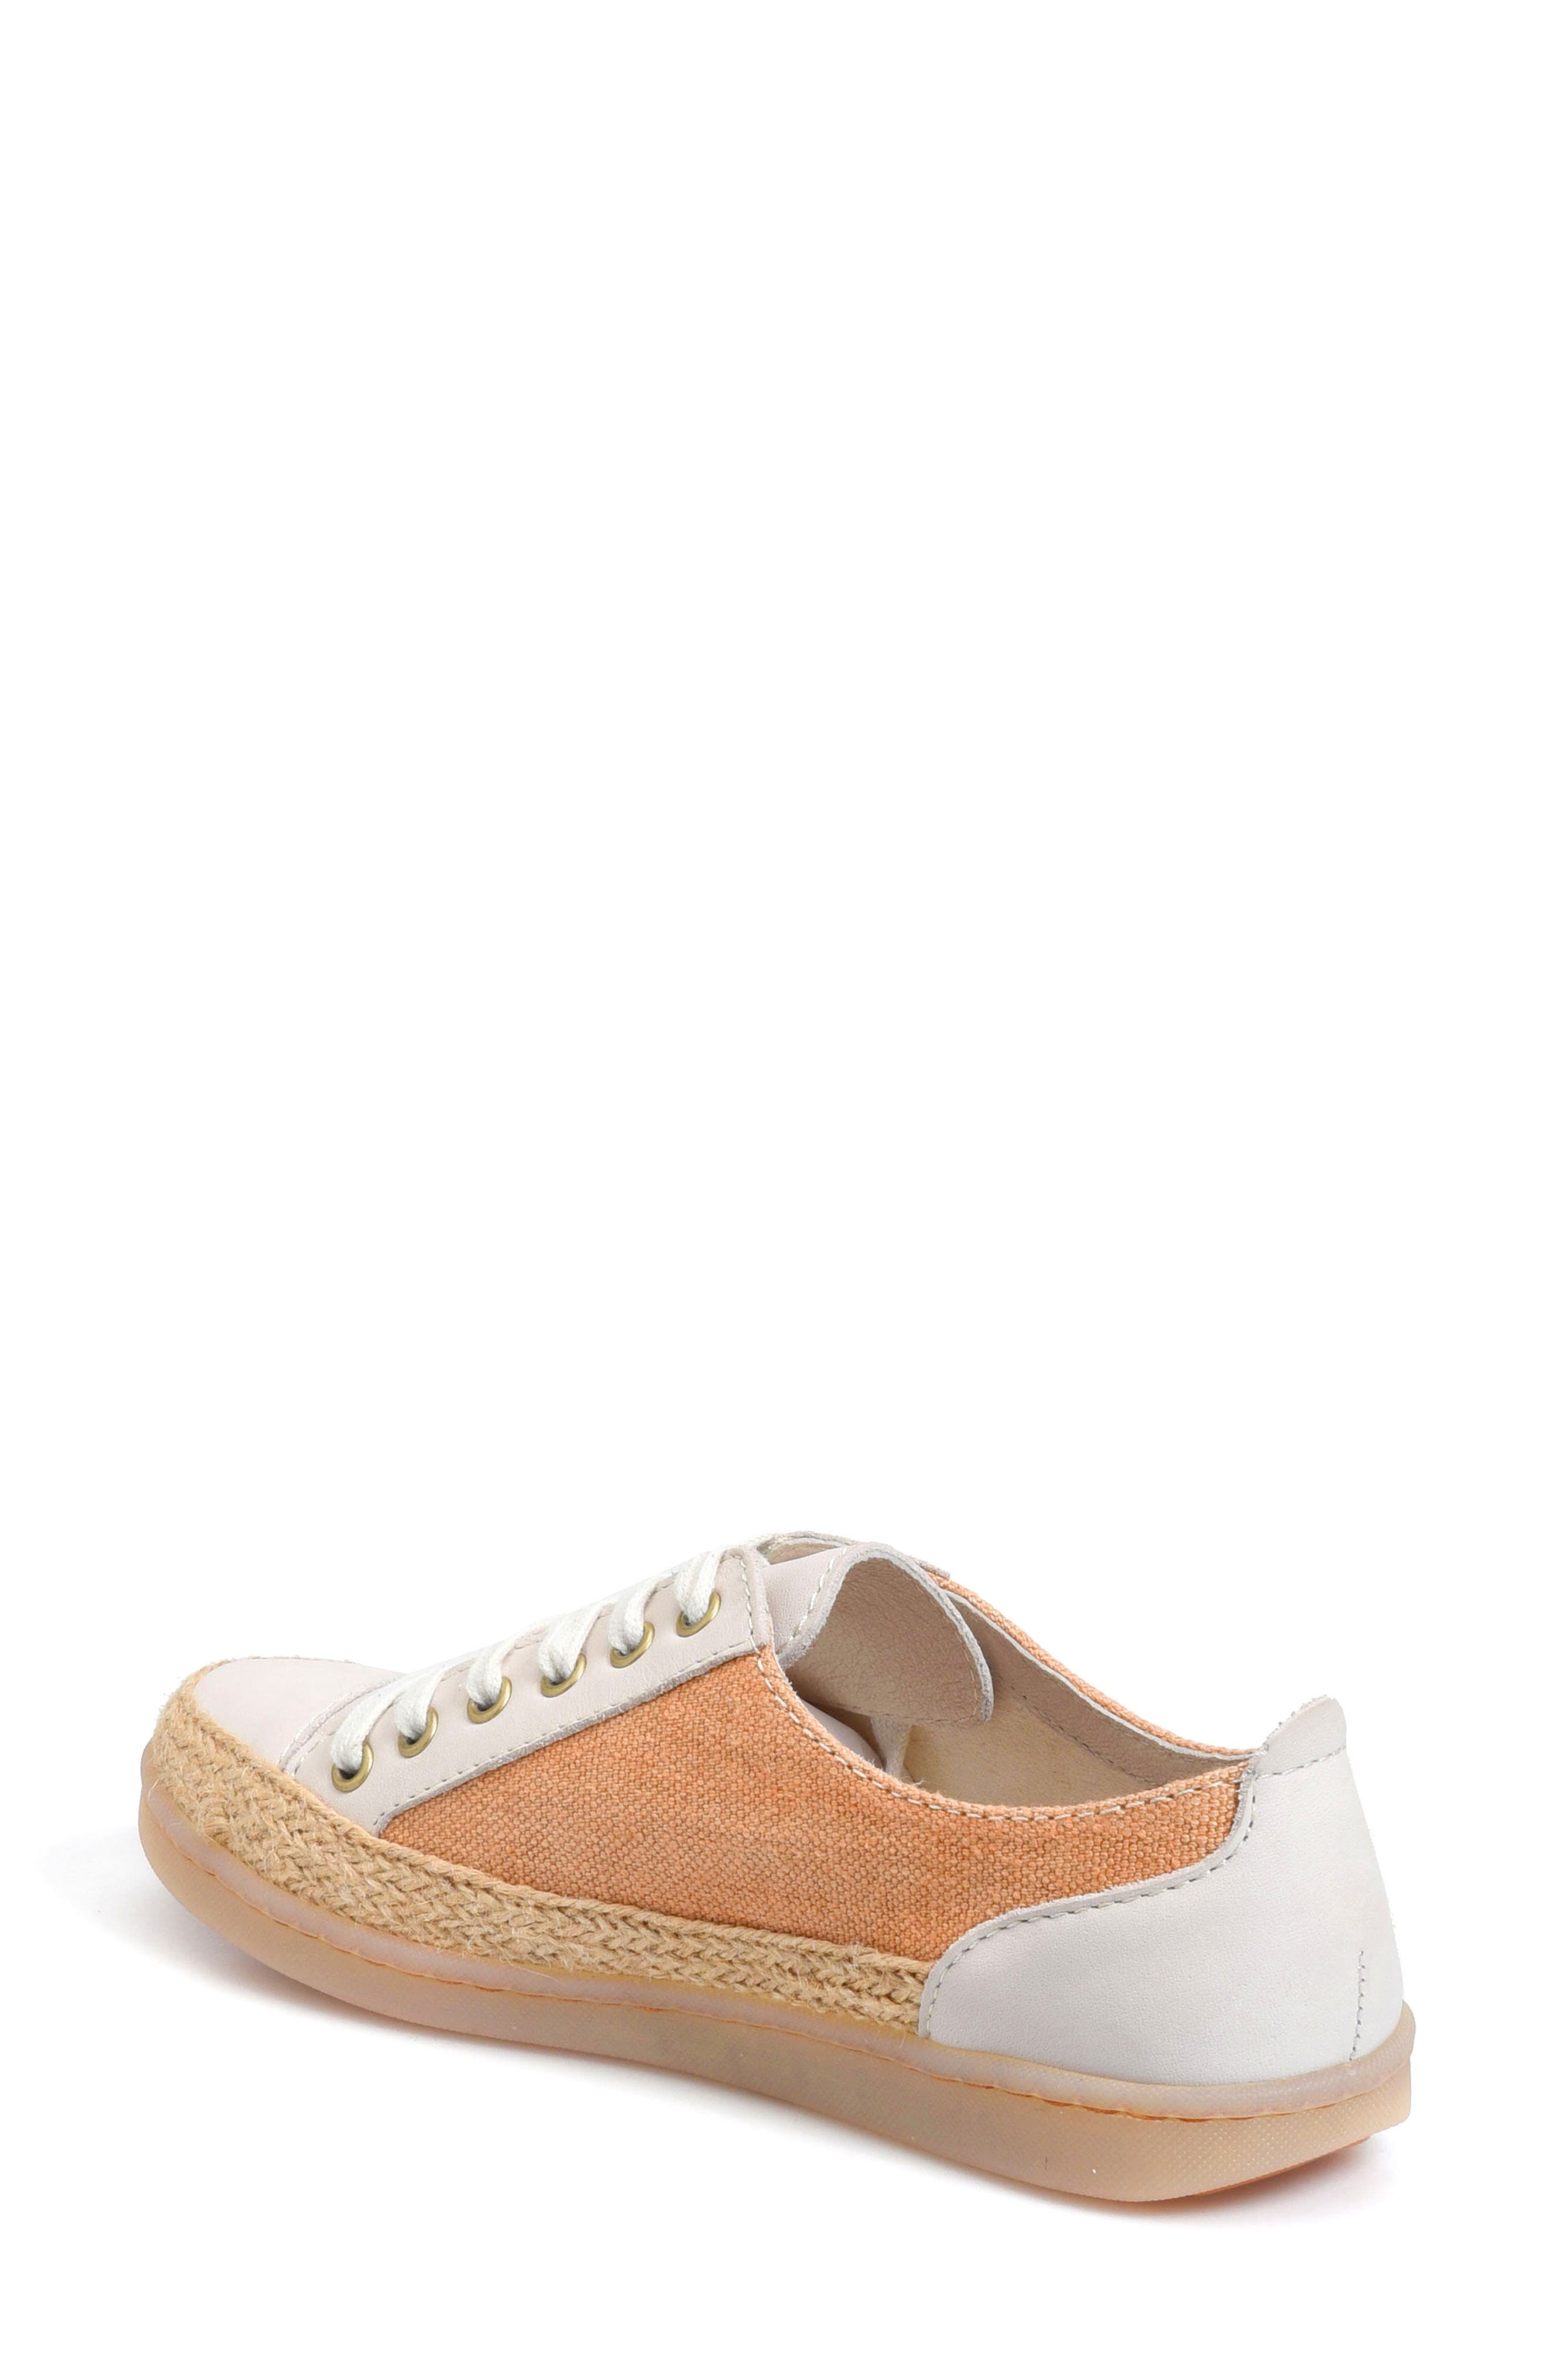 Alternate Image 2  - Børn Corfield Sneaker (Women)